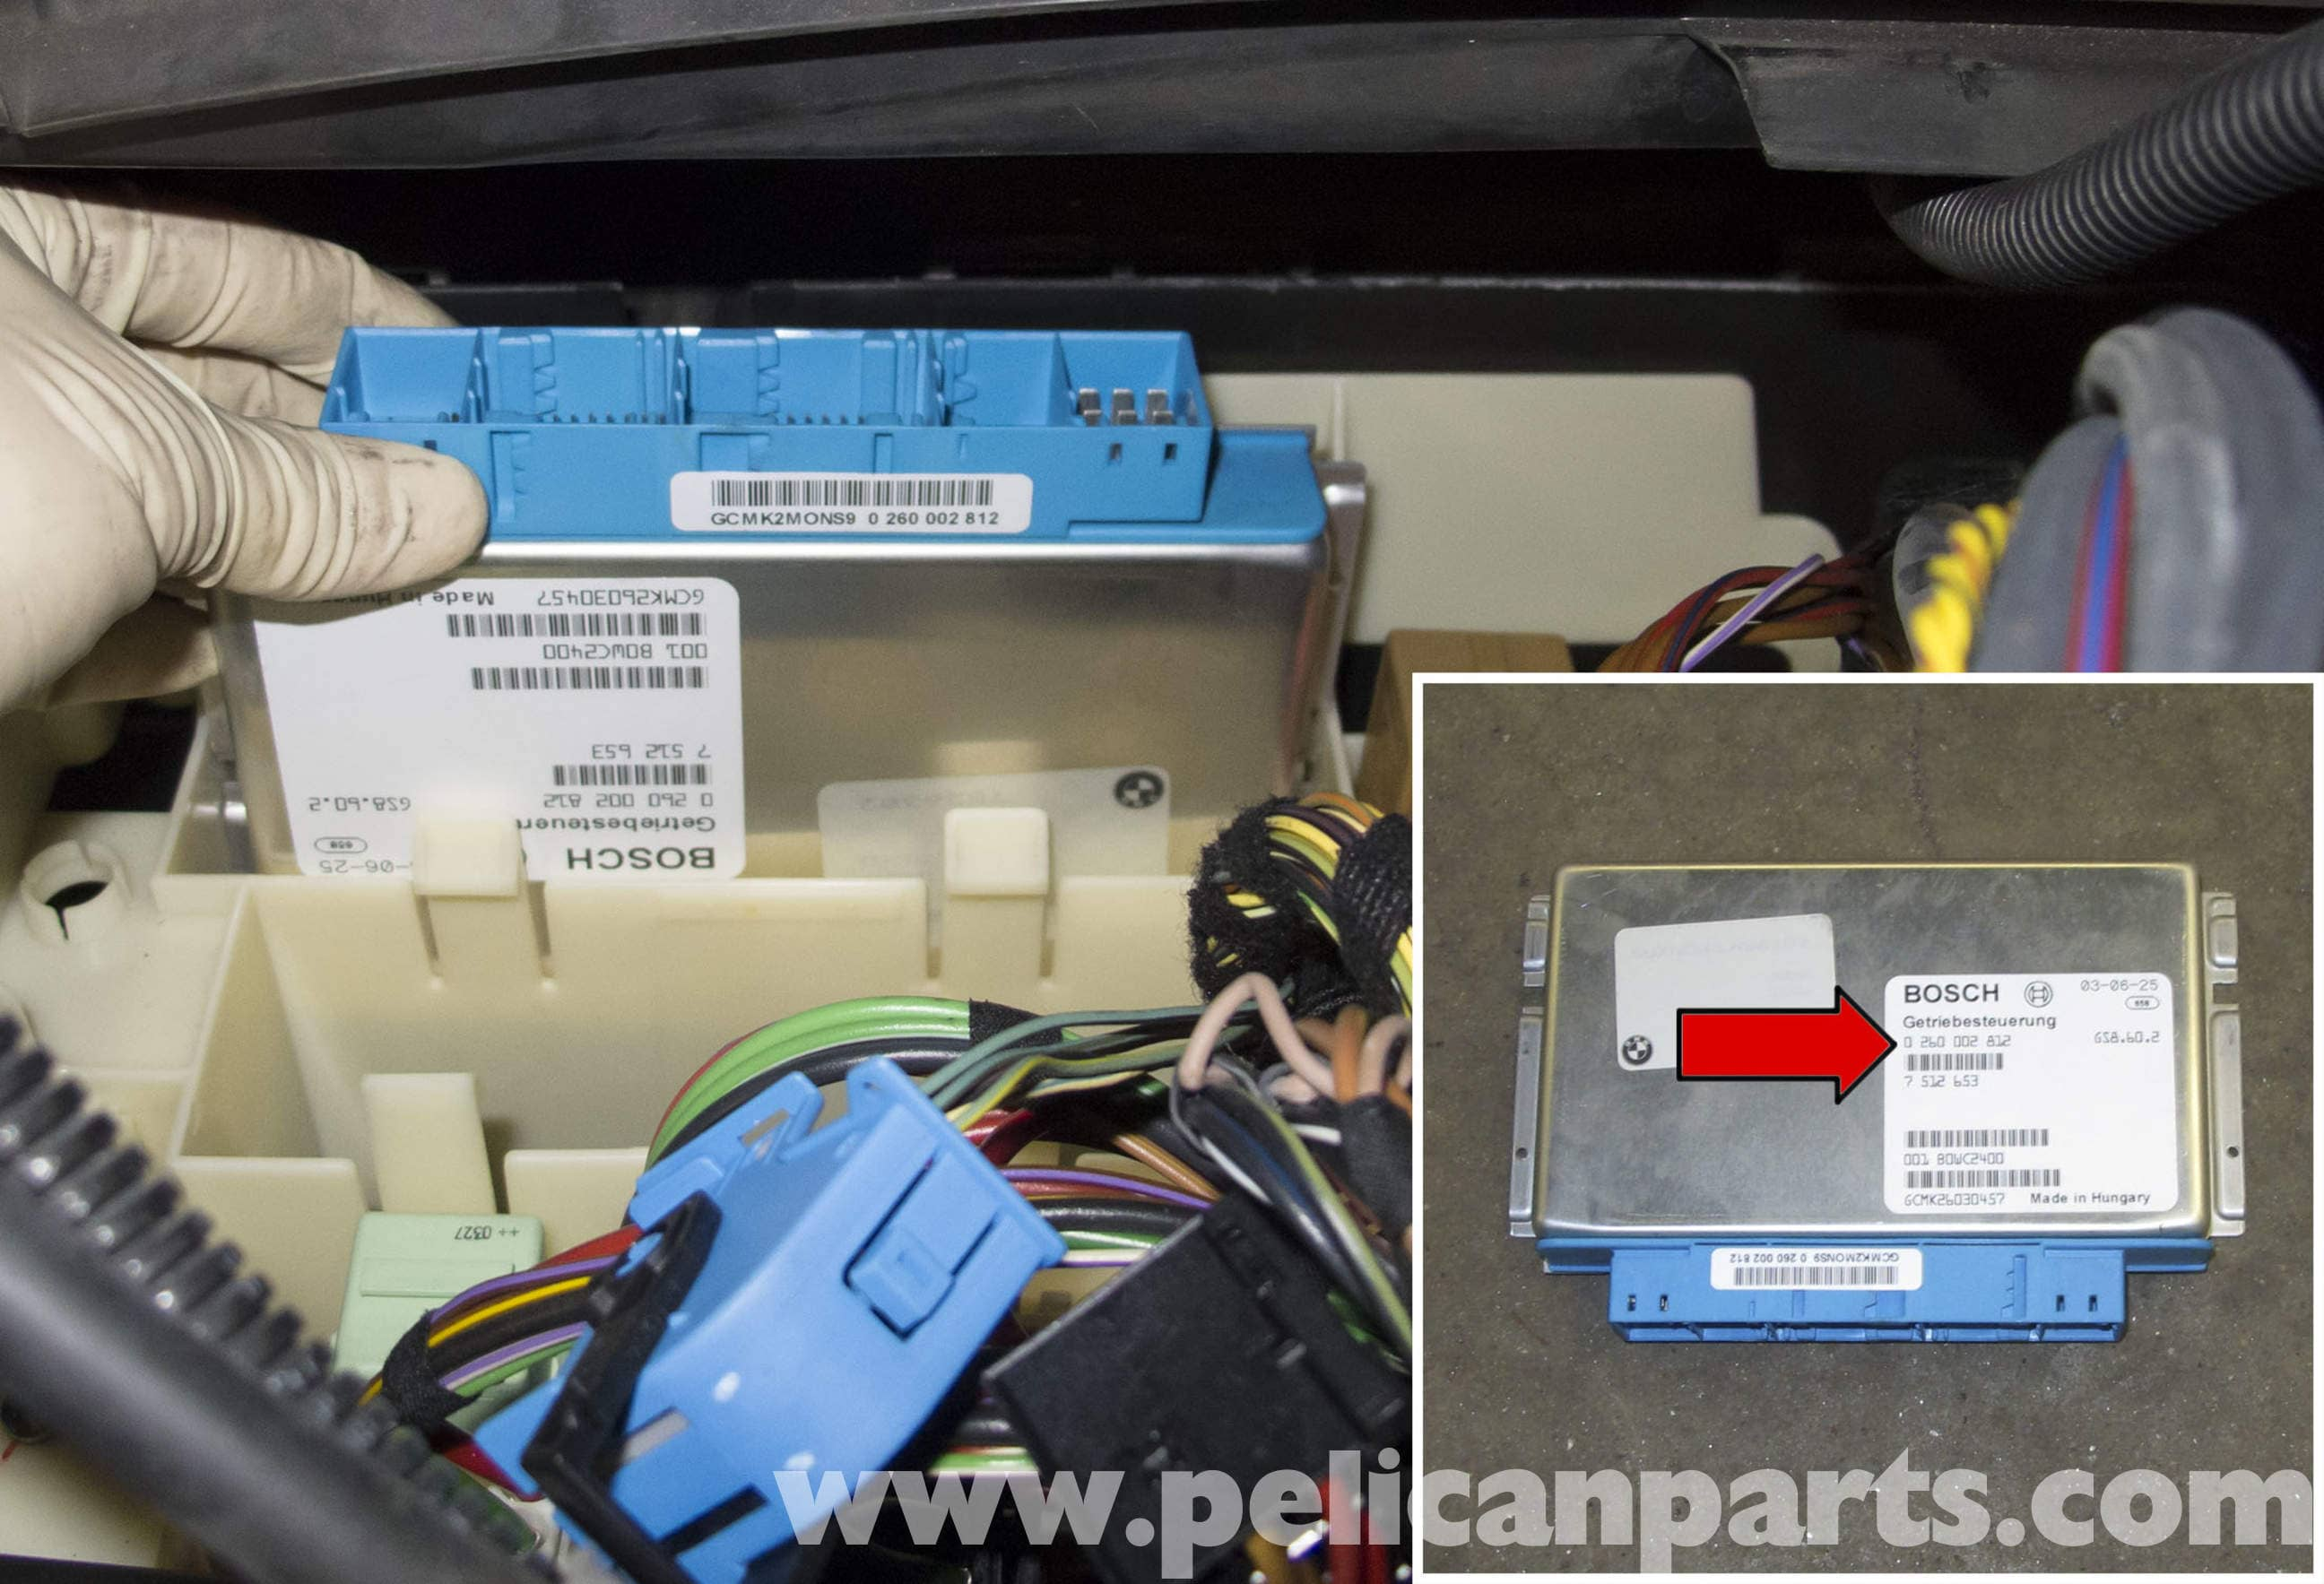 pic13 bmw x5 dme and tcm replacement (e53 2000 2006) pelican parts BMW X5 Fuse Panel Diagram at gsmx.co